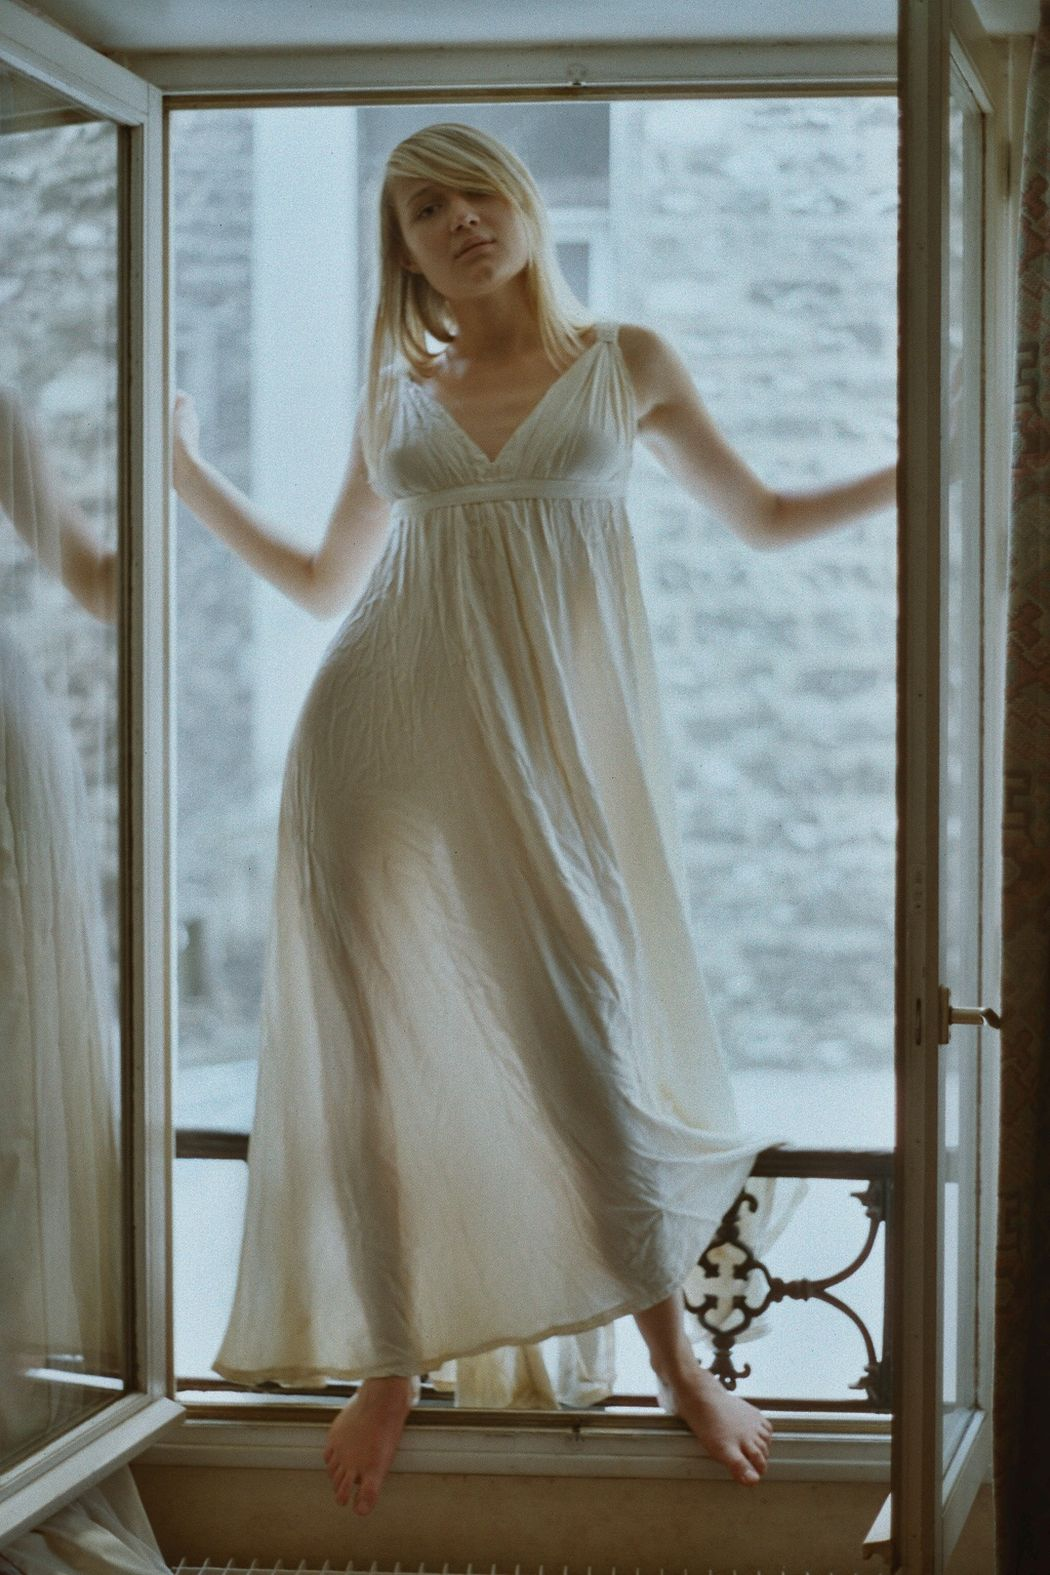 a window Adult Adults Only Barefoot Beautiful Woman Beauty Blond Hair Erotic_art Erotic_photo Fine Art Photography Full Length Hotel Hotel Window Indoors  One Person One Young Woman Only Paris Portrait Portrait Of A Woman Real People Standing Standing In Window Transparent Dress Women Young Adult Young Women